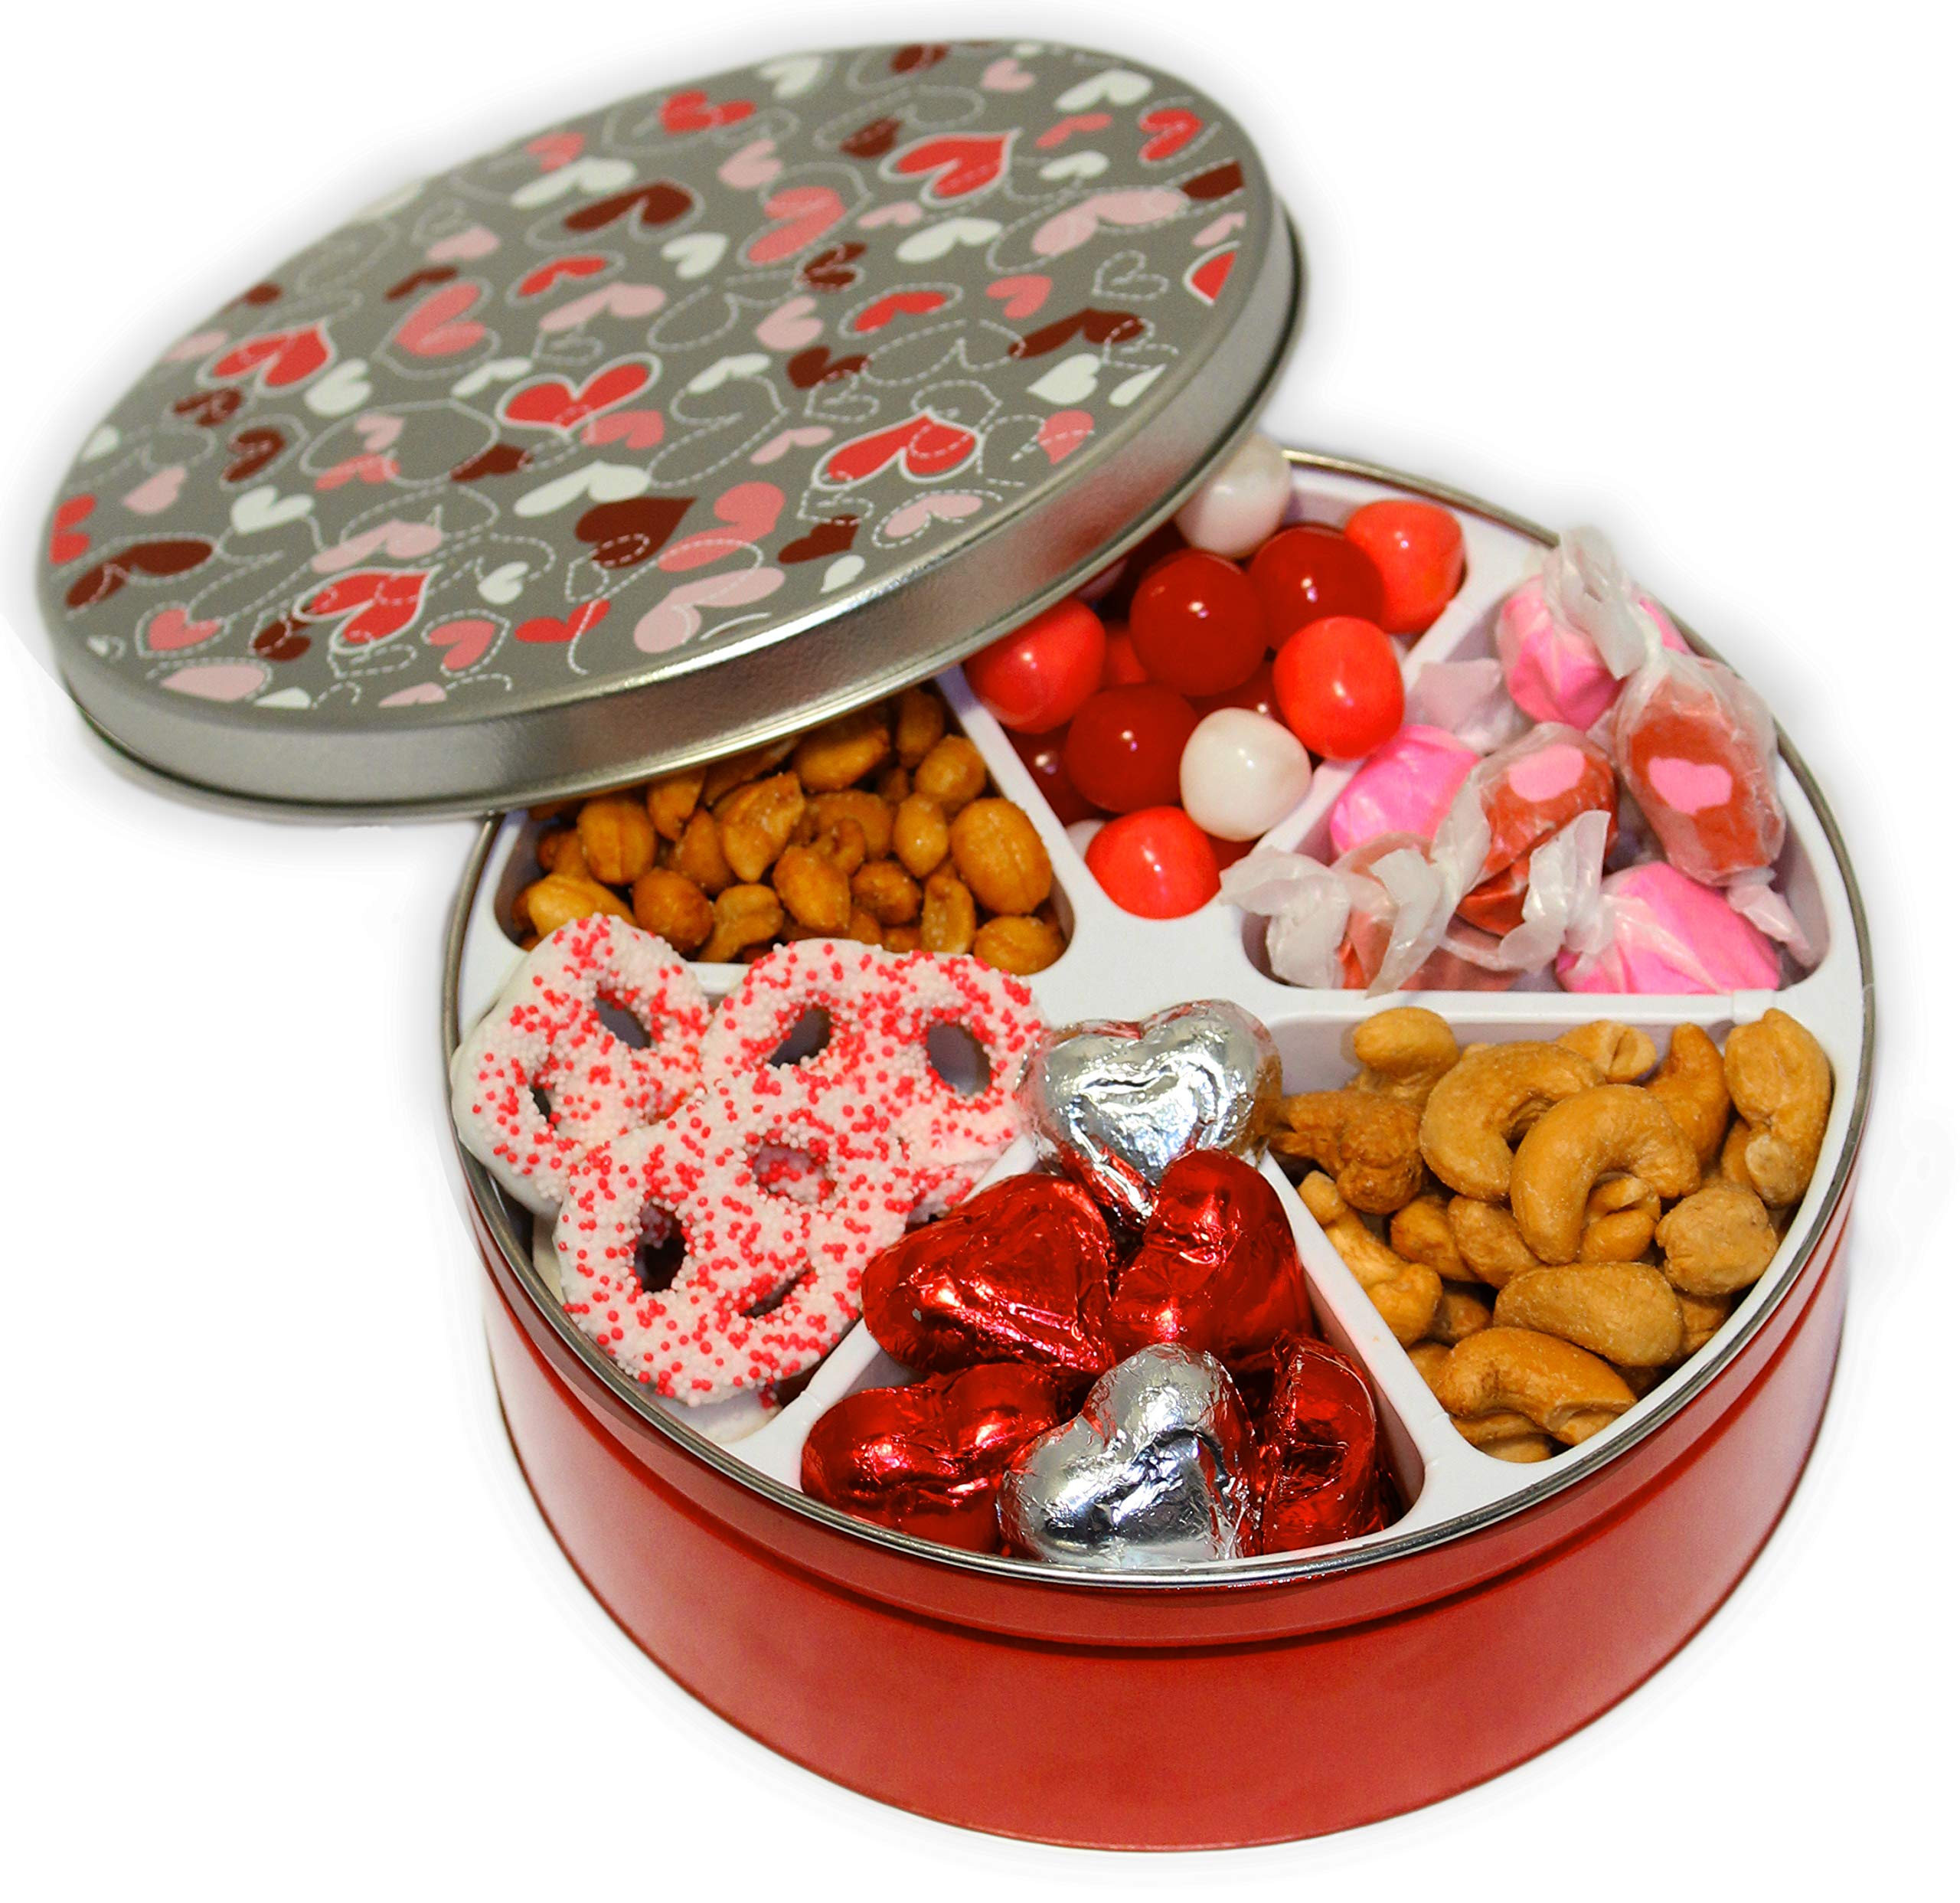 Valentines Day Candy Gift Basket Filled With Assorted Candies Chocolates Nuts Sweet Treats Gourmet Food Keepsake Gift Box For Husband Wife Boys Girls Boyfriend Girlfriend Prime Delivery Buy Online In Hong Kong